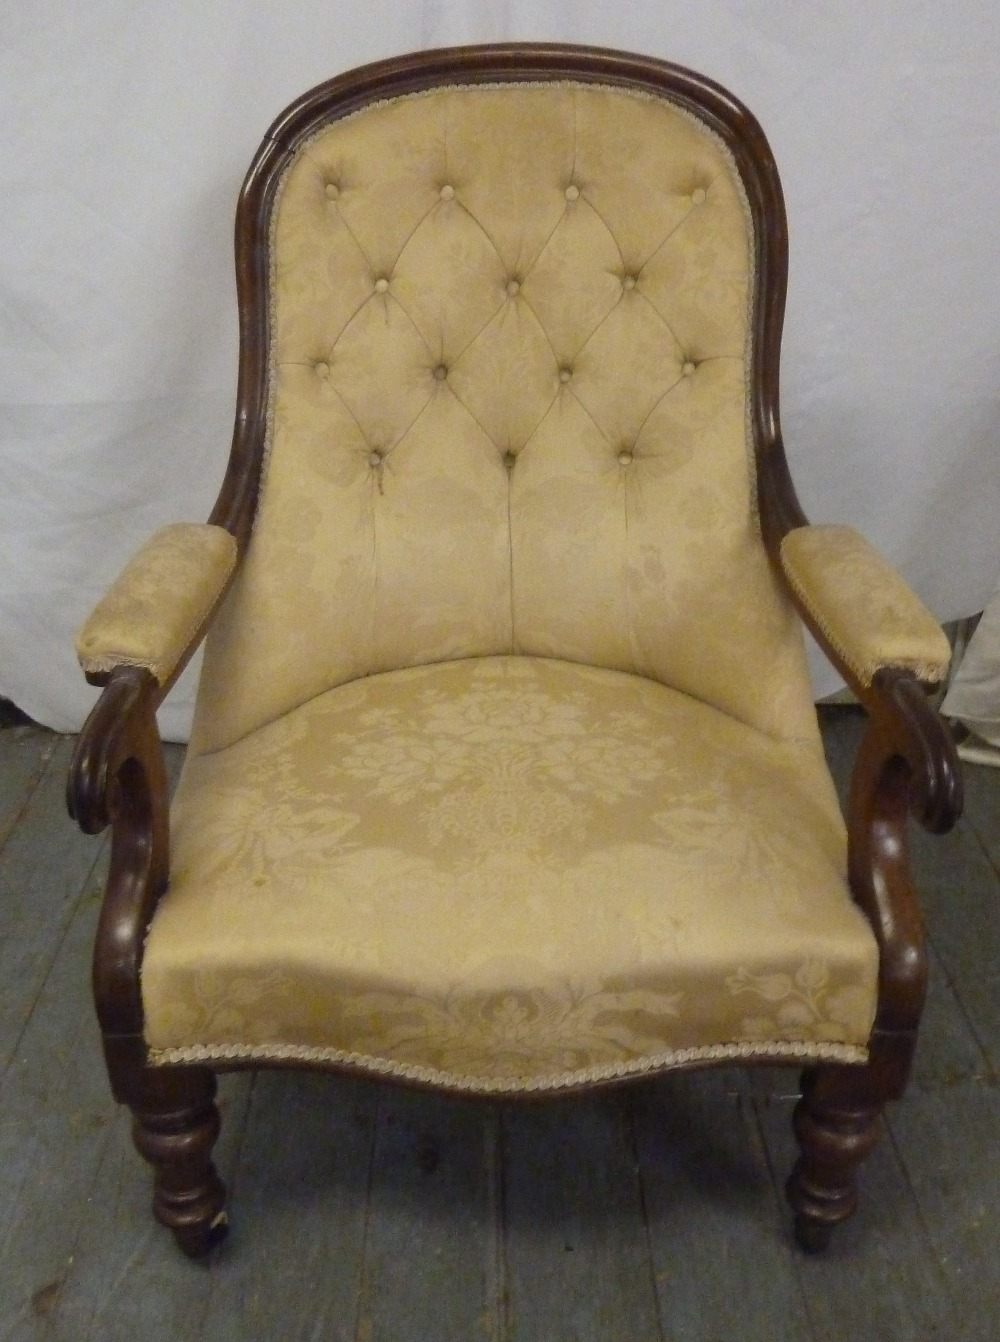 Lot 24 - A Victorian mahogany upholstered armchair on turned legs with original castors